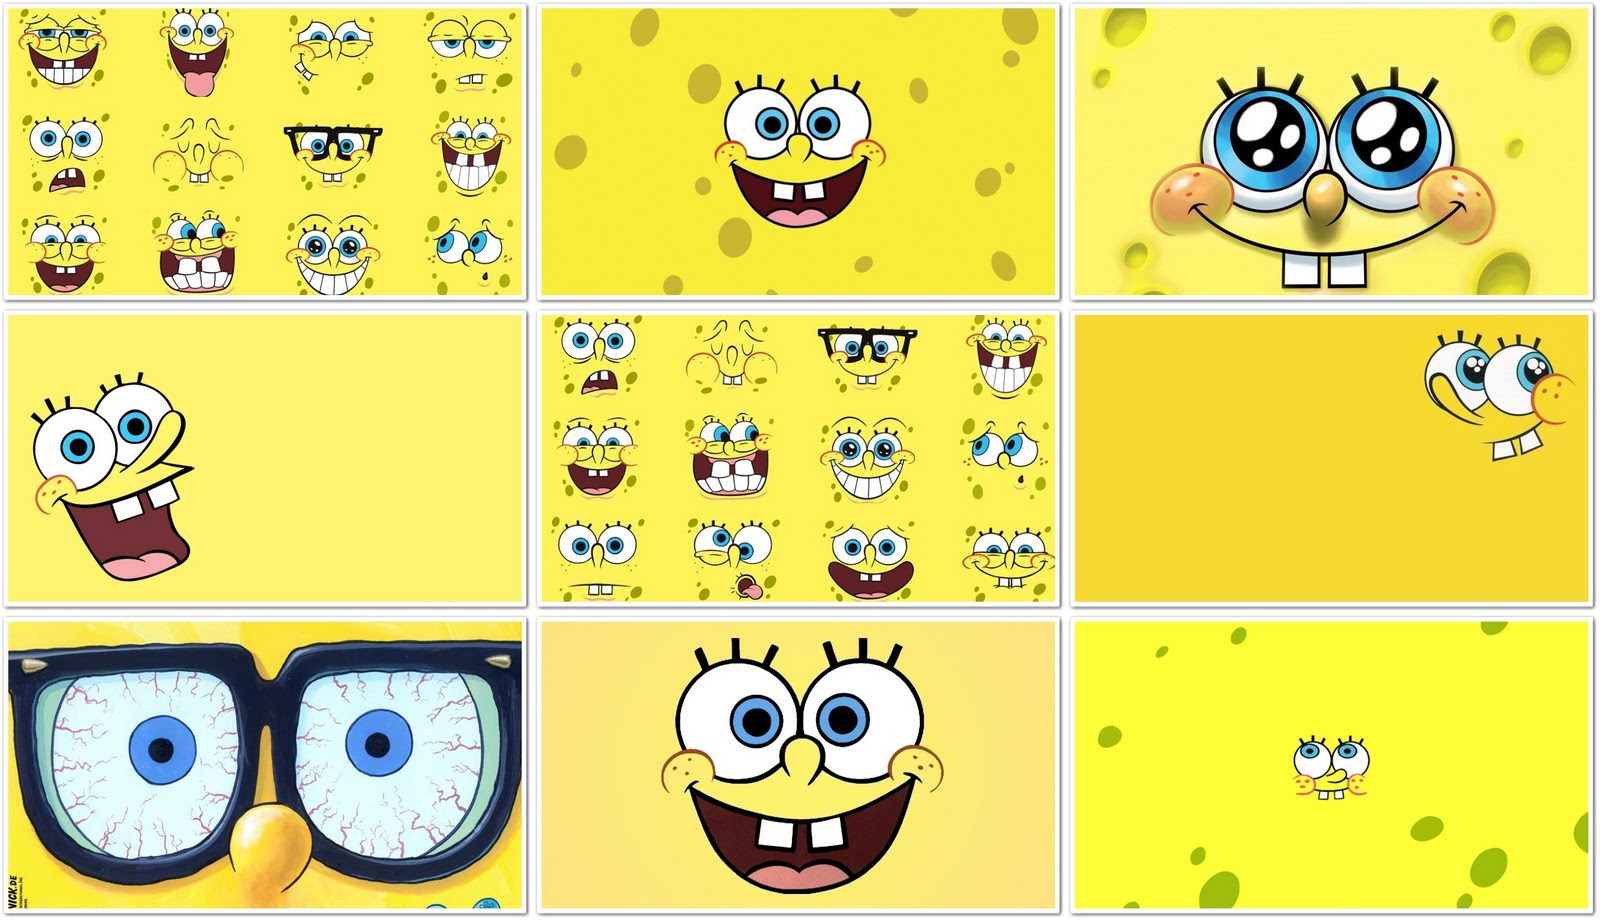 Spongebob Squarepants Wallpapers Windows